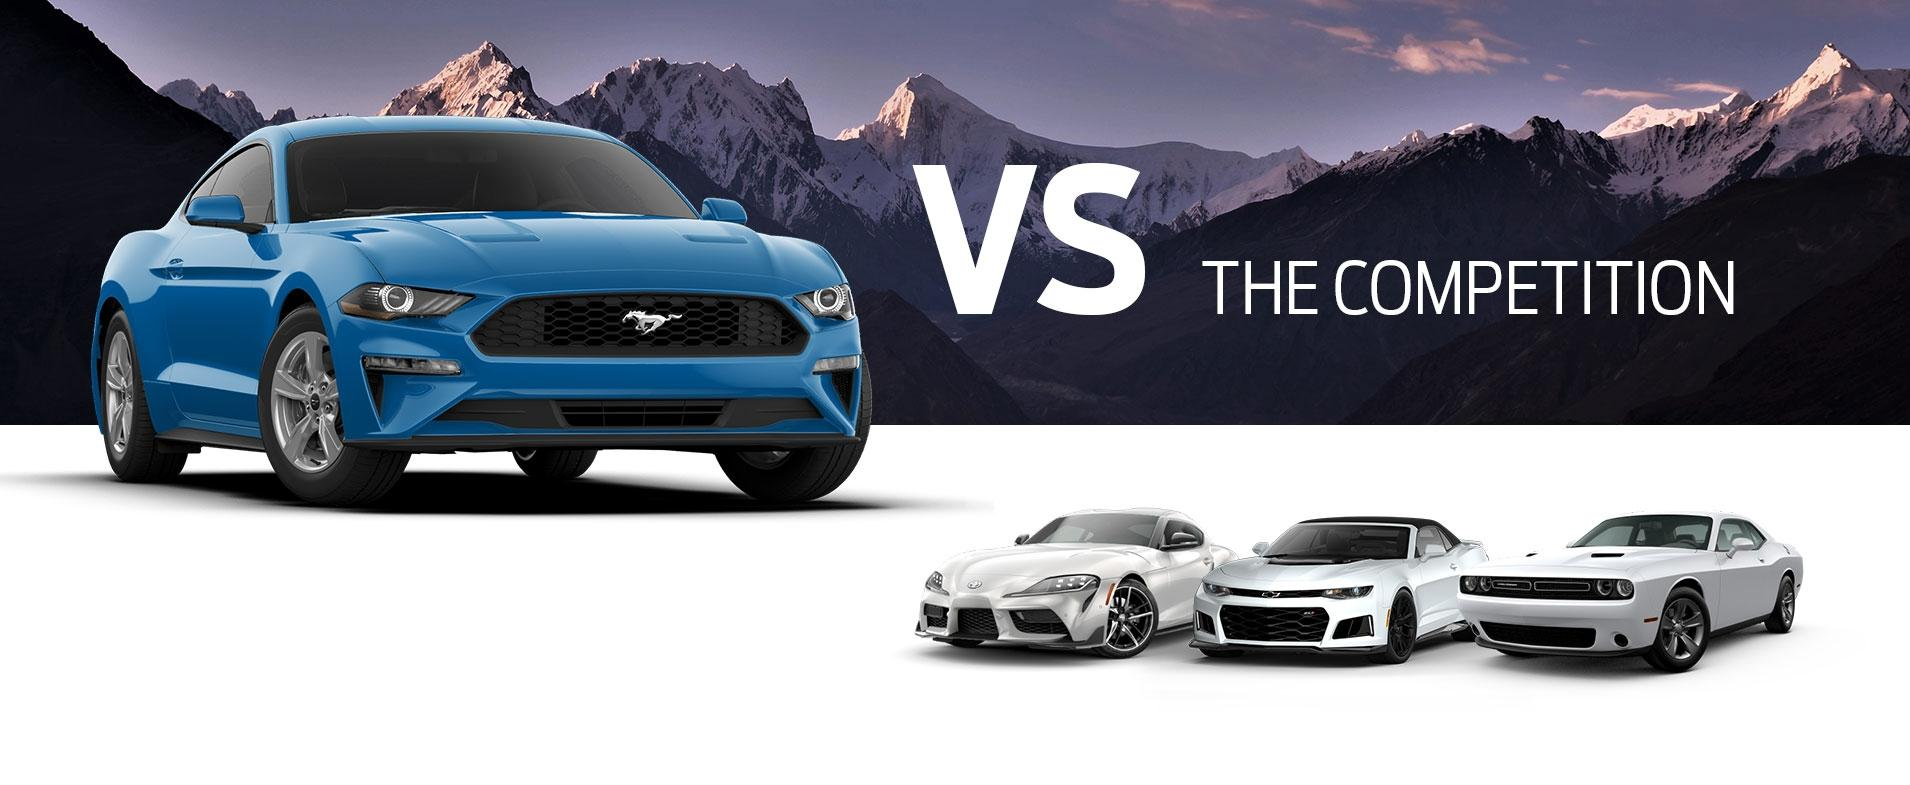 Mustang vs Competition